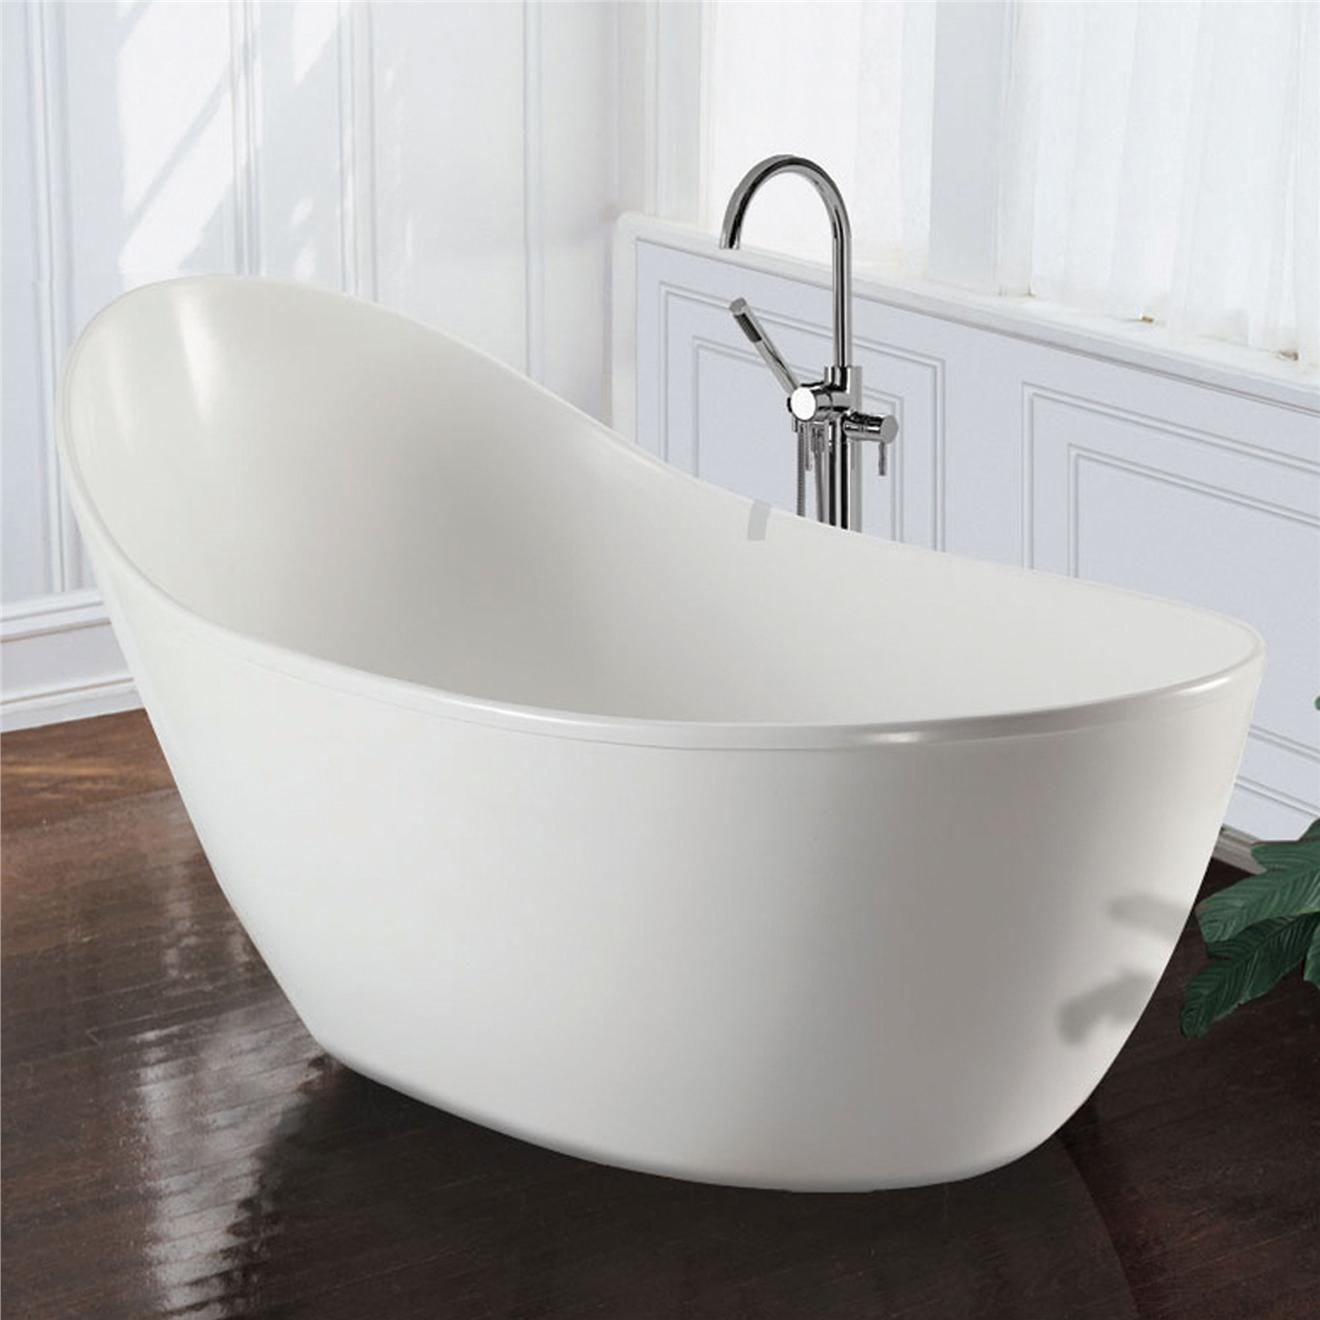 Love the slipper style soaker tub. But will it look dated in 5 years ...